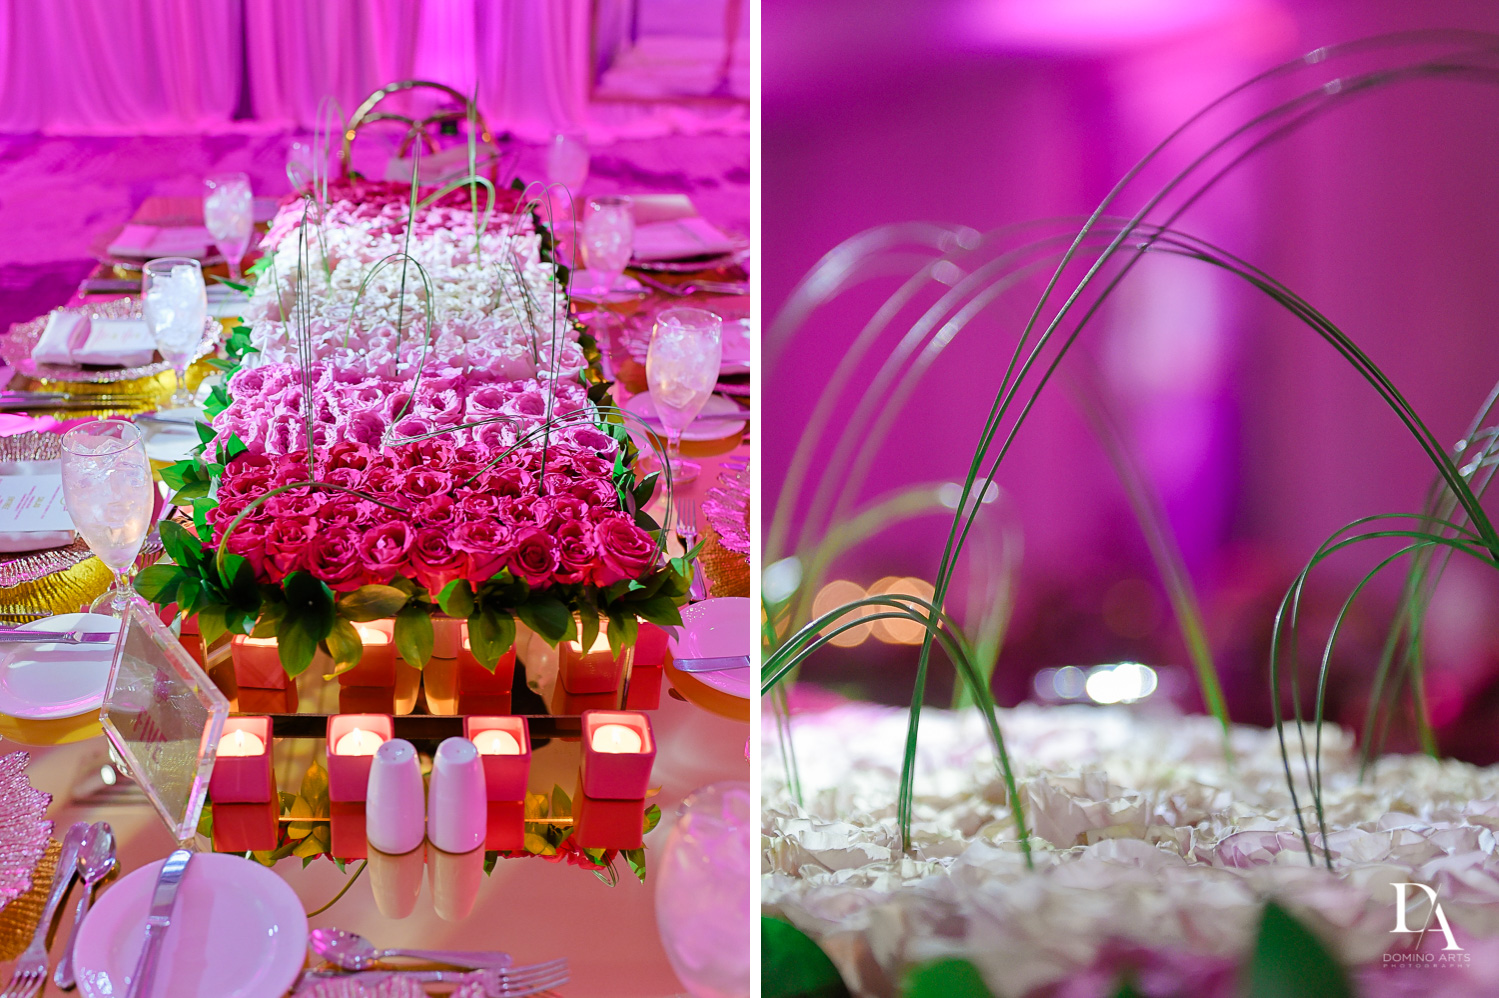 Trendy pink roses and candles bat mitzvah decor at Saint Andrews Country Club South Florida by Domino Arts Photography